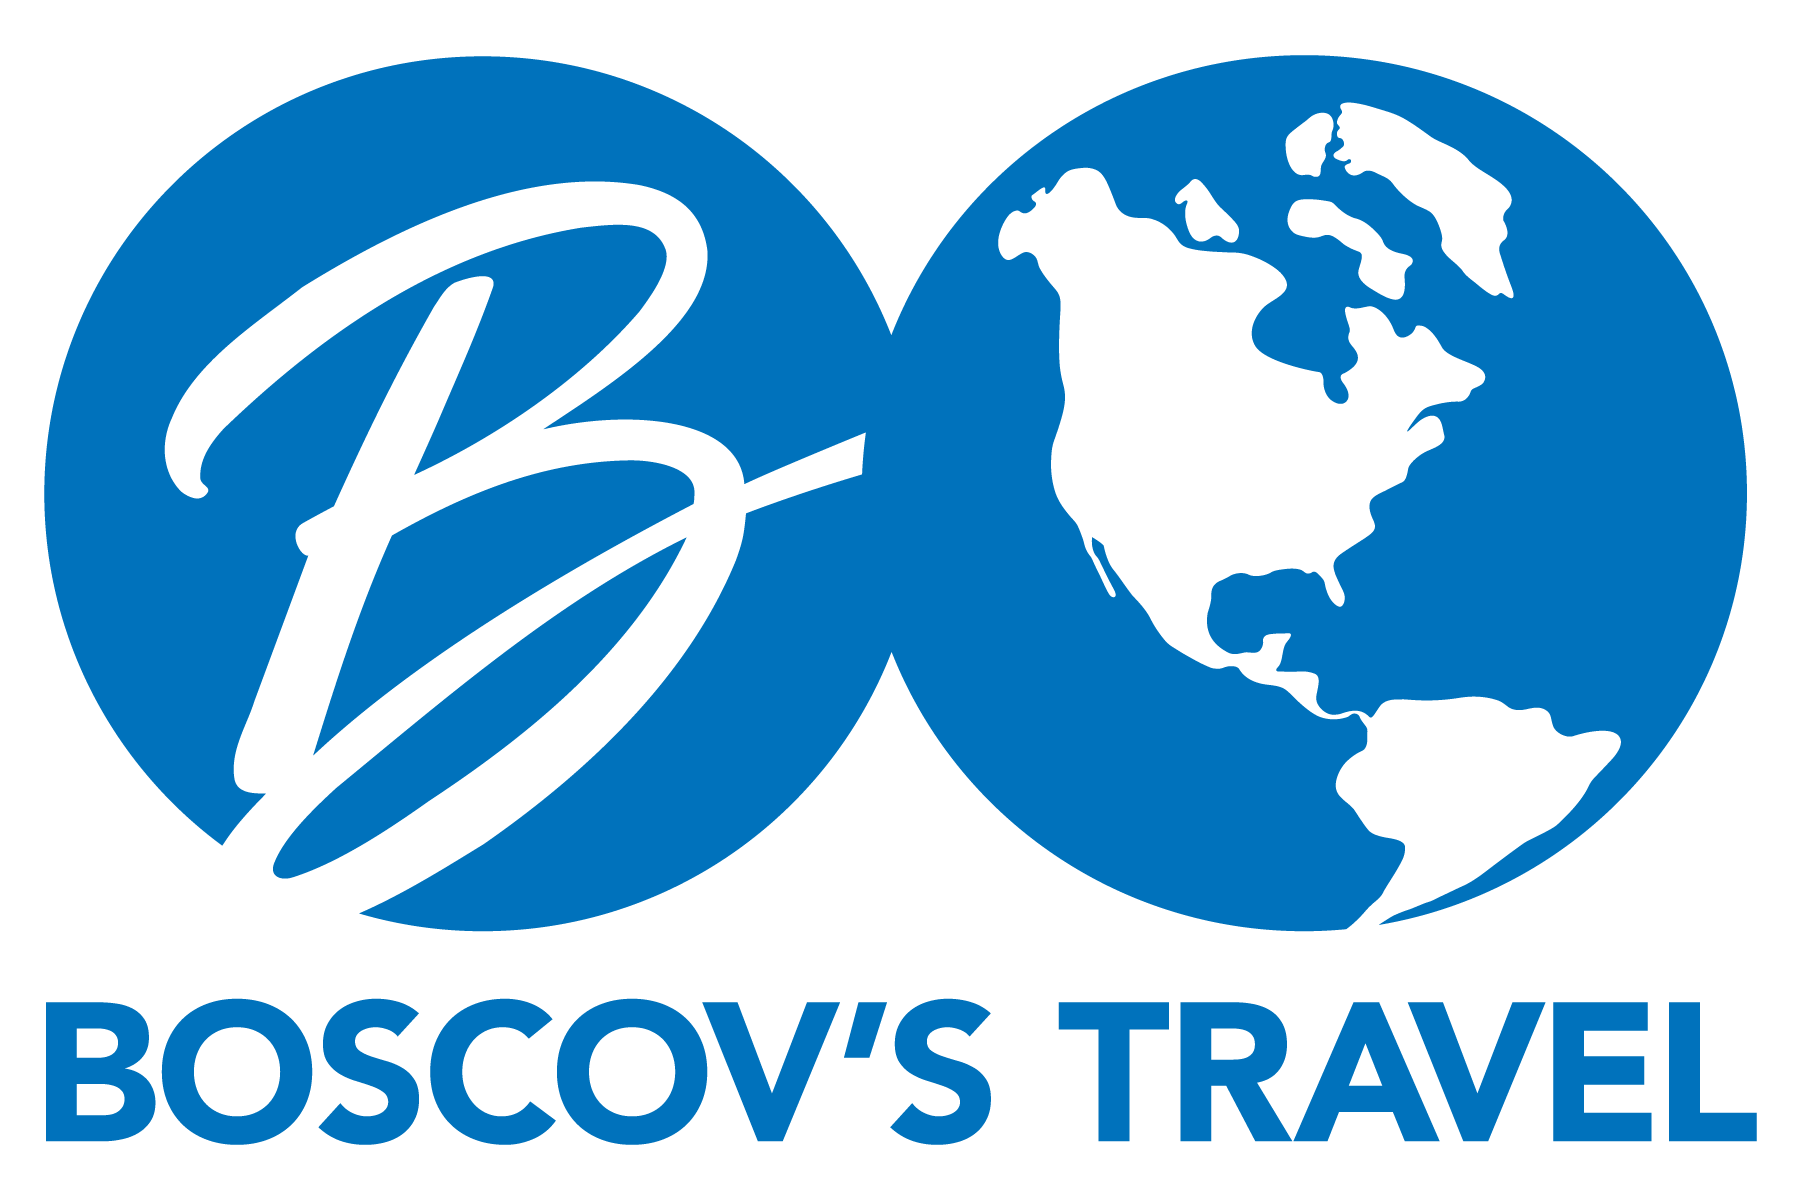 Boscov's Travel